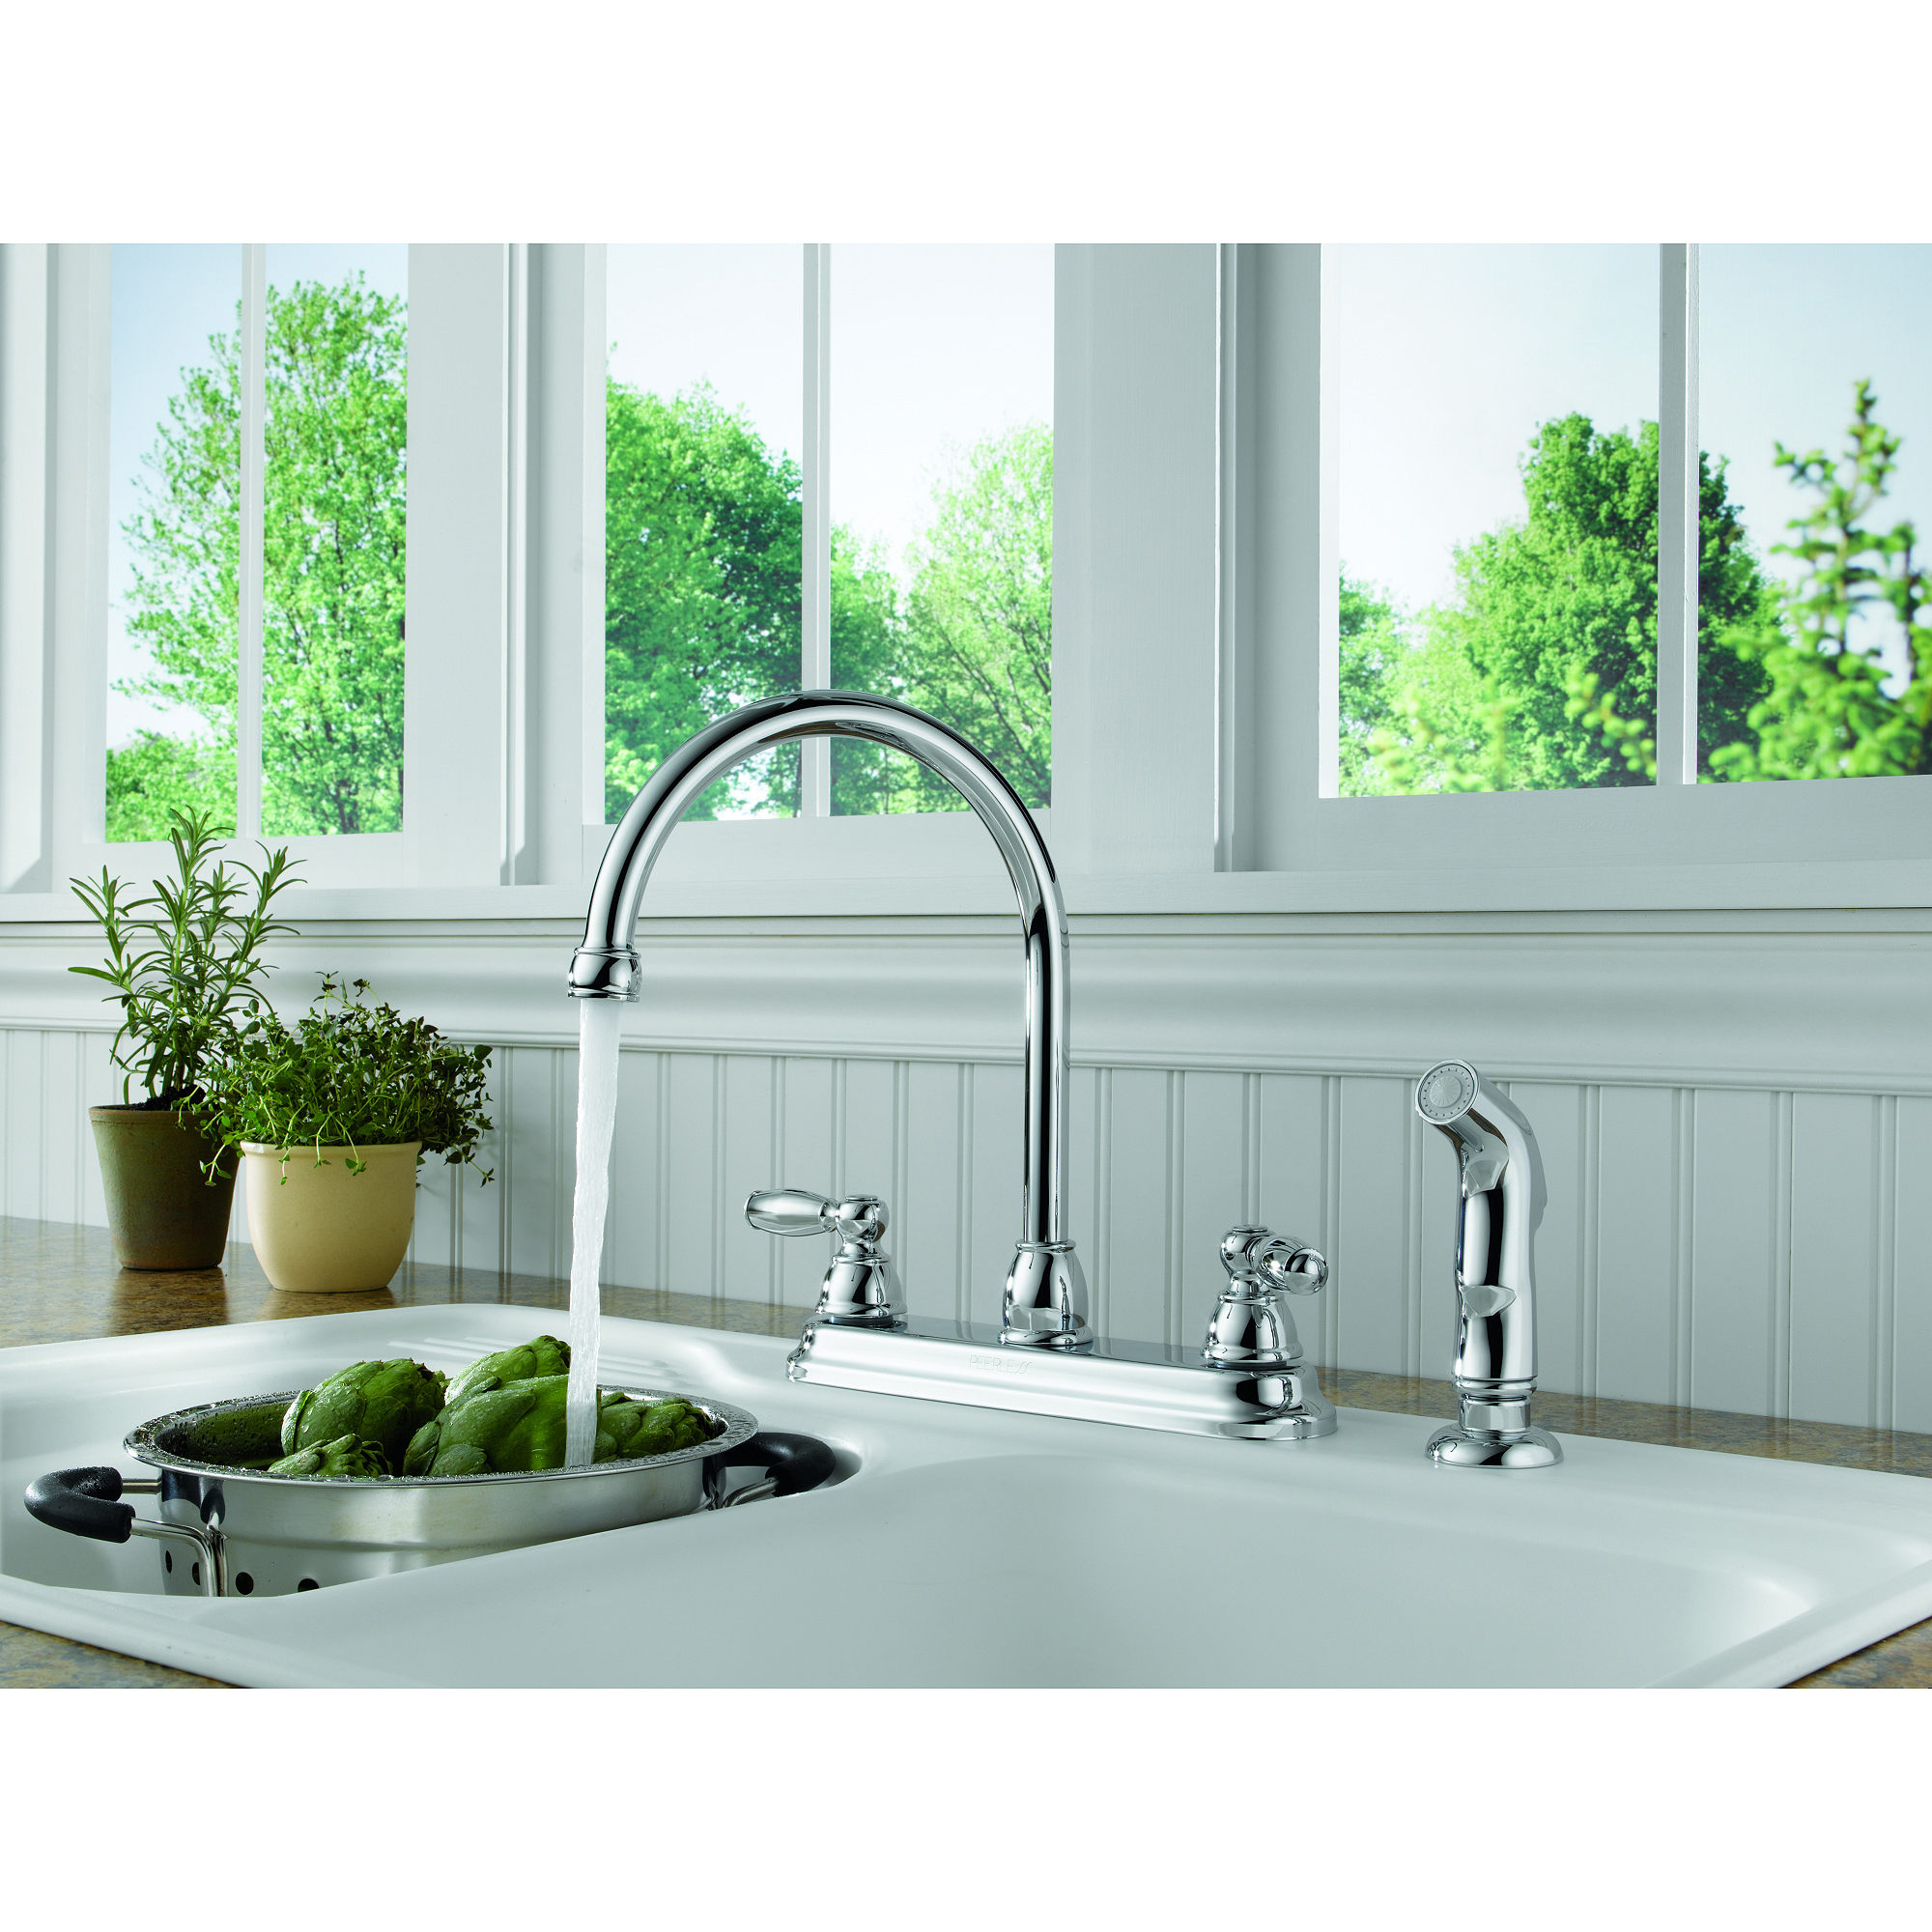 peerless two-handle kitchen faucet with side-sprayer, chrome, #p299575lf-w  - walmart.com QWFKVCQ